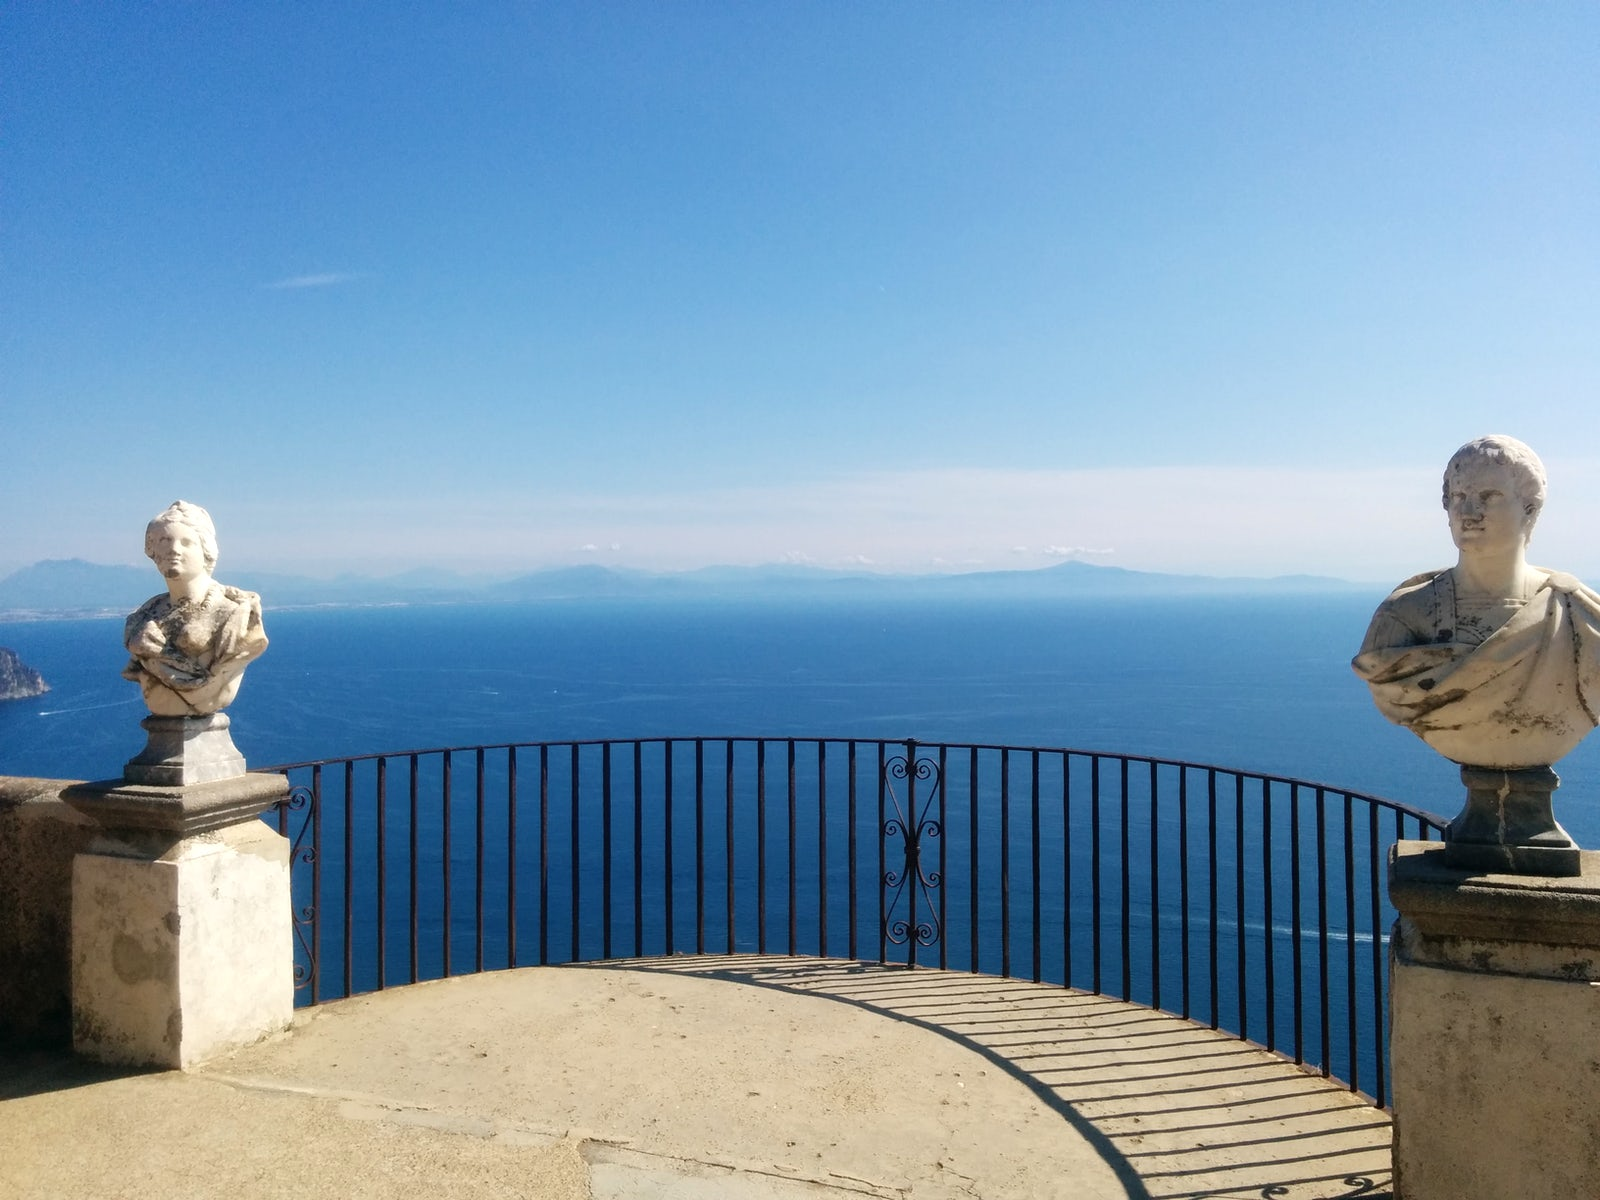 The breathtaking terrace of infinity in villa cimbrone for Terrace of infinity